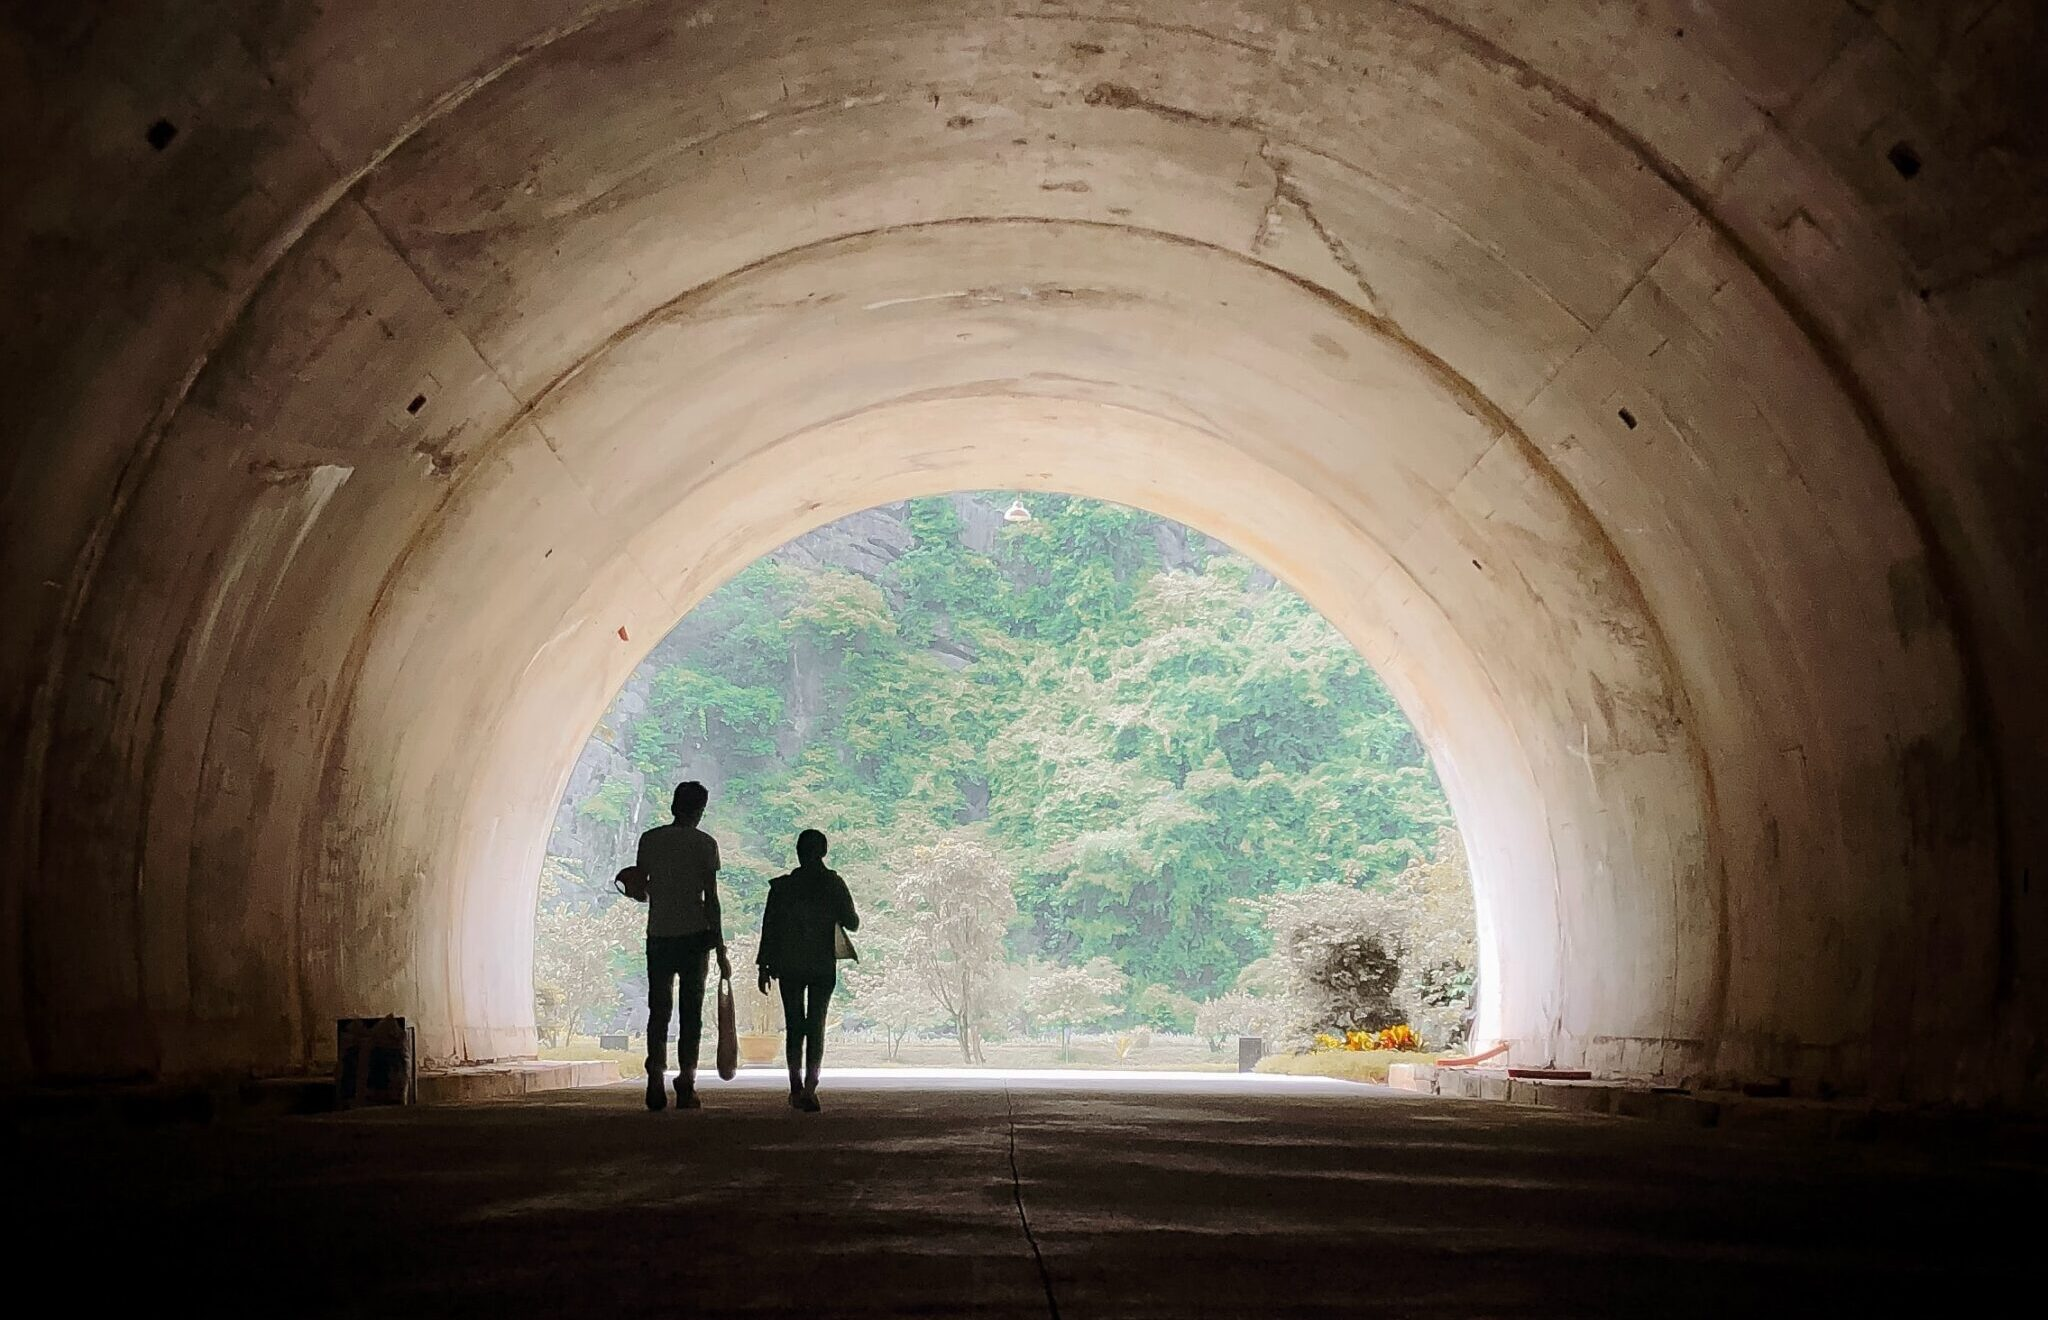 image of two people walking through a tunnel